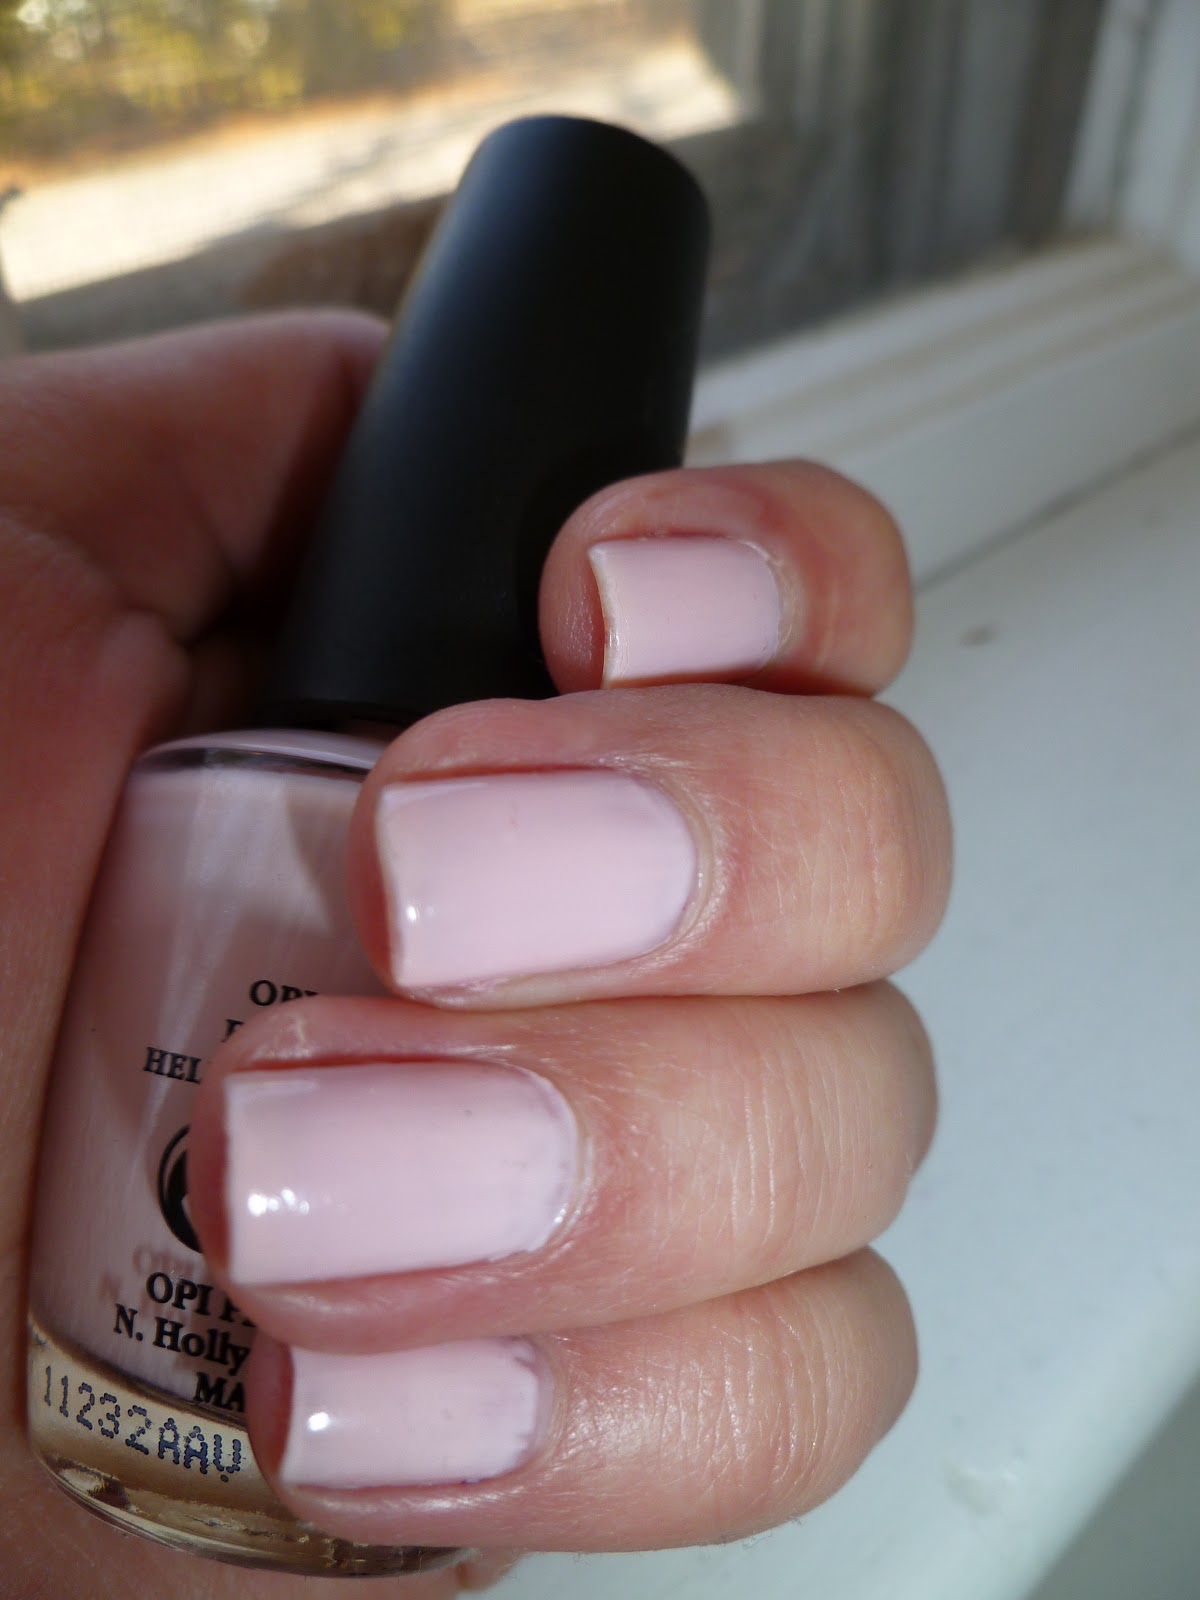 Fabuleux AboutFace: OPI Sweetheart : The Best Nude Polish? ER92